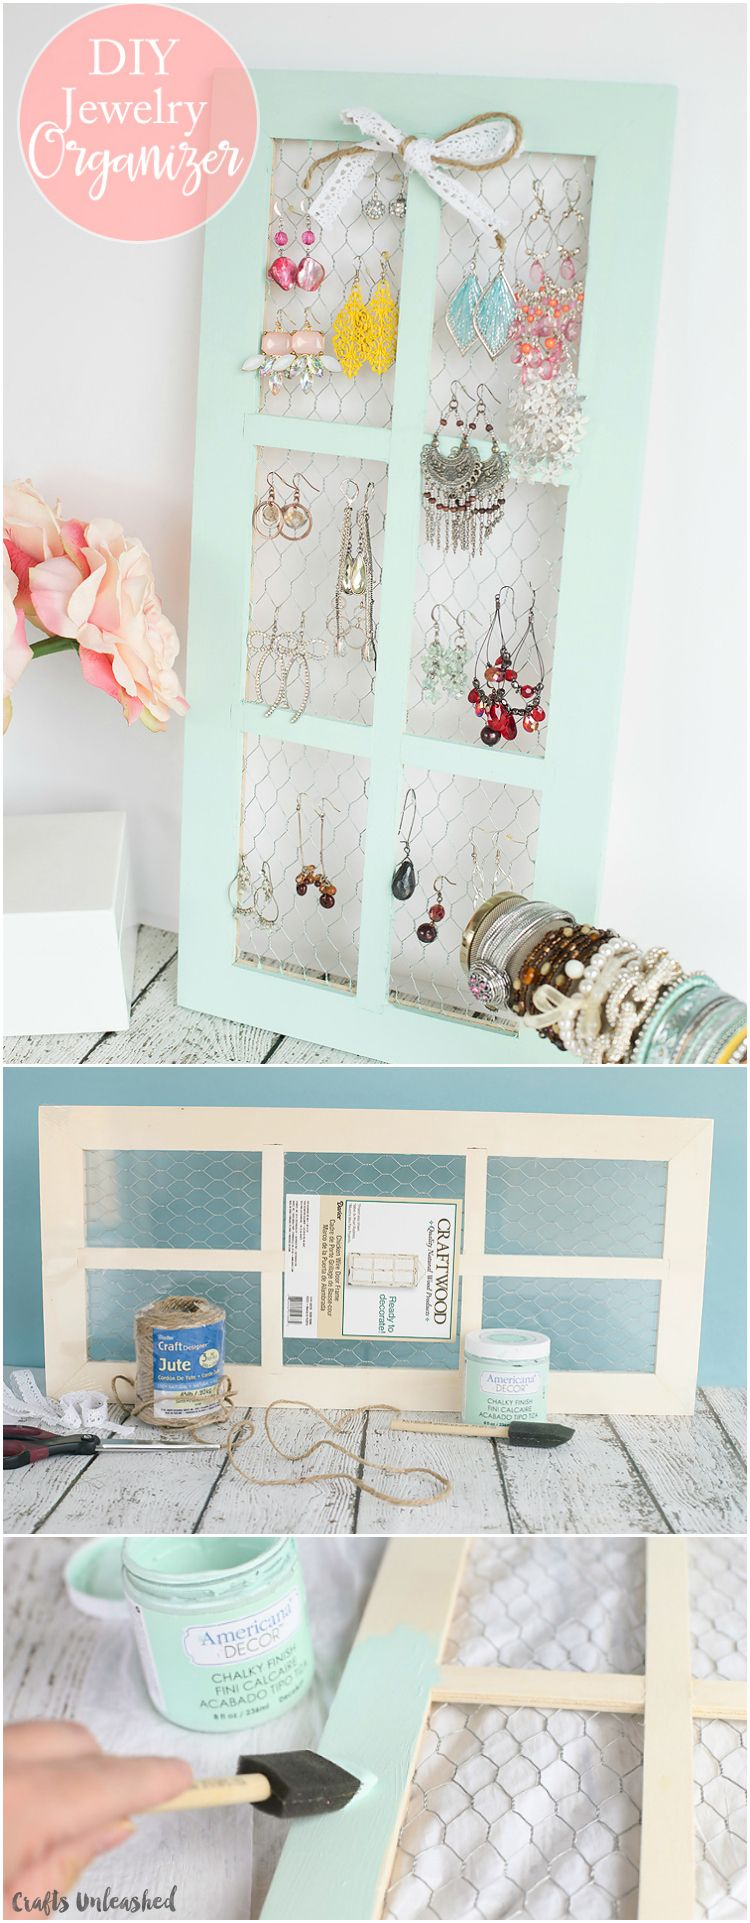 Diy Necklace Holder Diy Jewelry Holder With Chicken Wire Window Frame Diy Jewelry